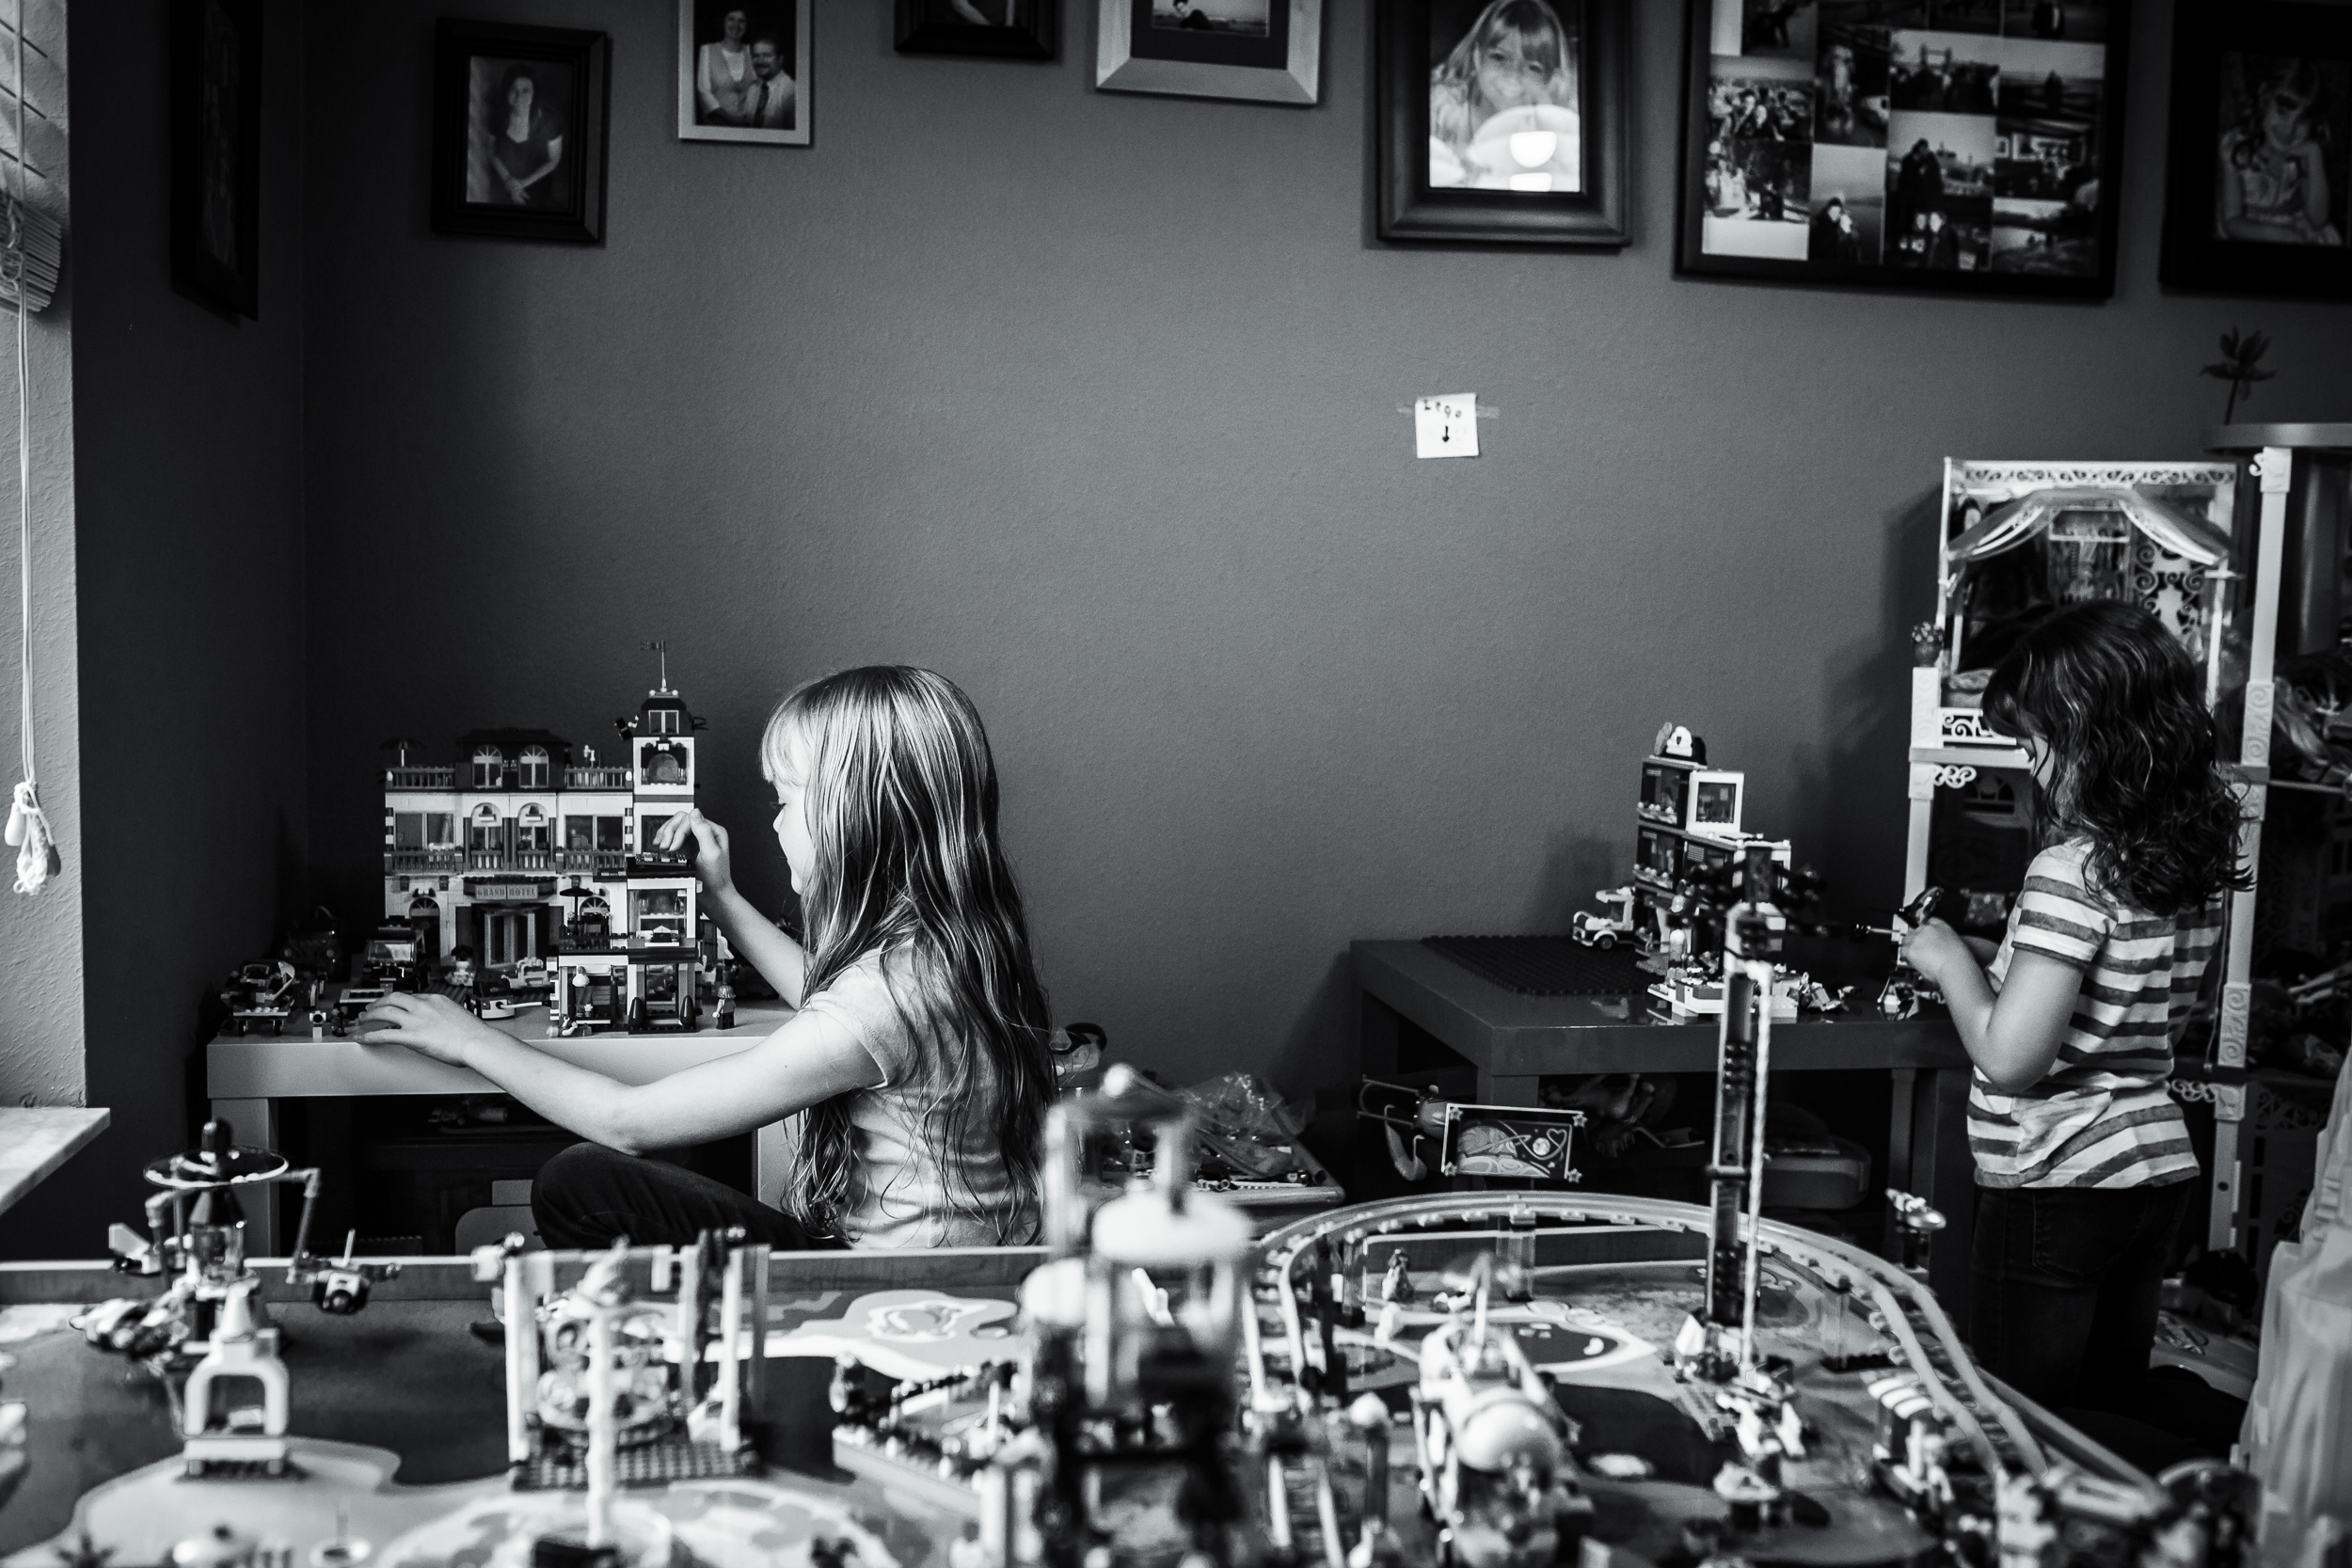 Sisters play Legos during documentary family story photography session in Winter Garden, Florida.